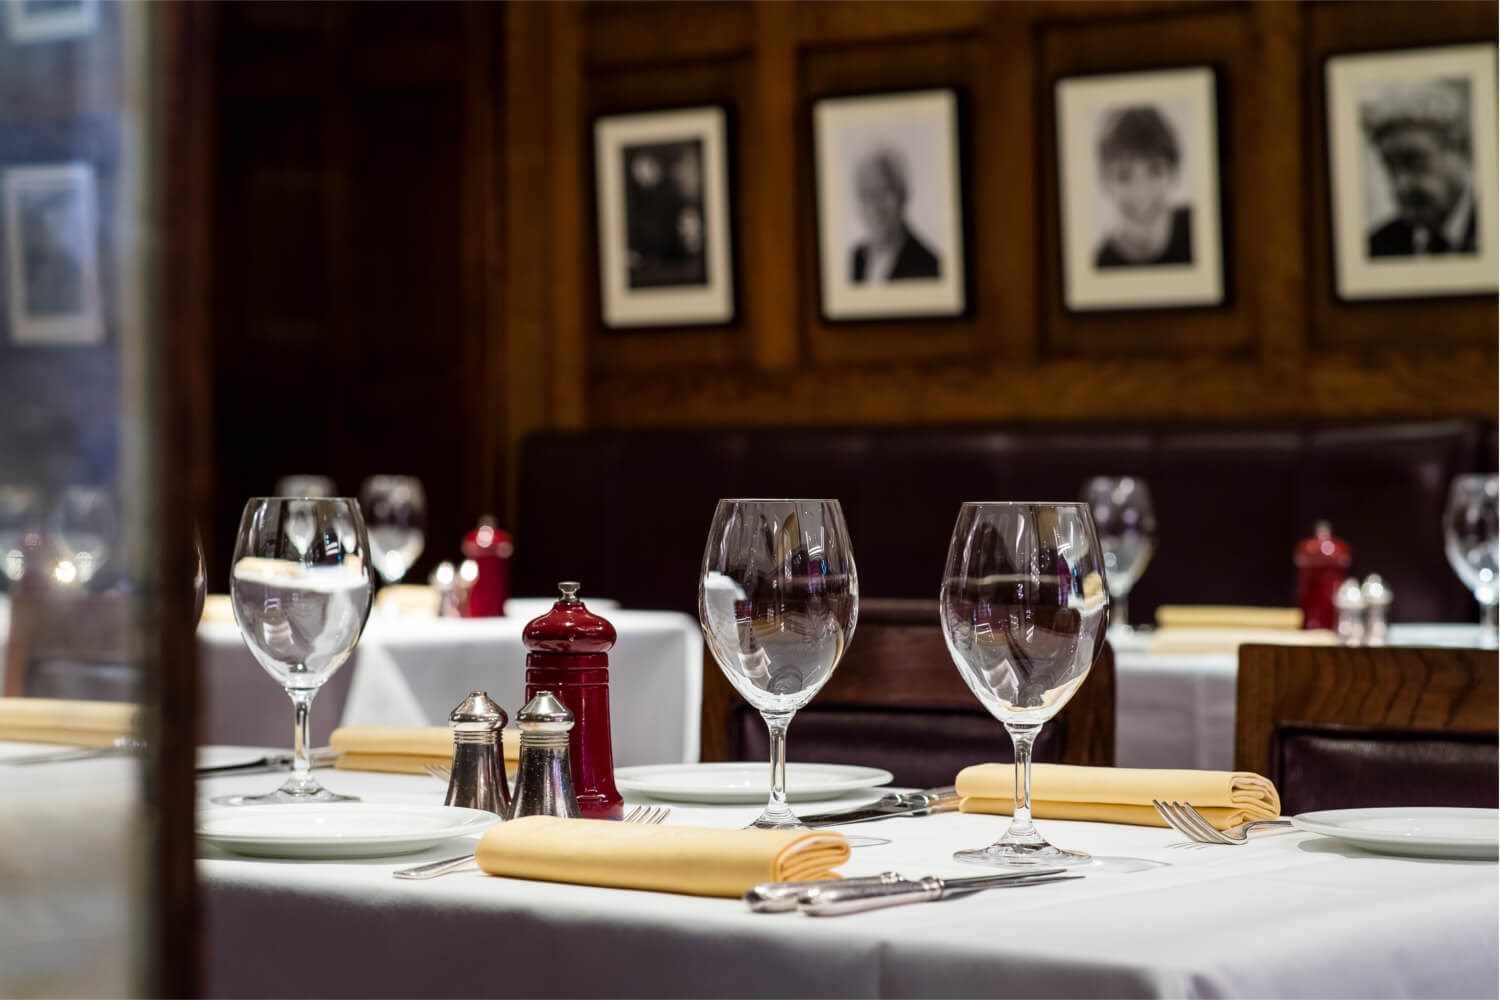 J Sheekey has been serving the finest fish and shellfish in Covent Garden since the 1890s